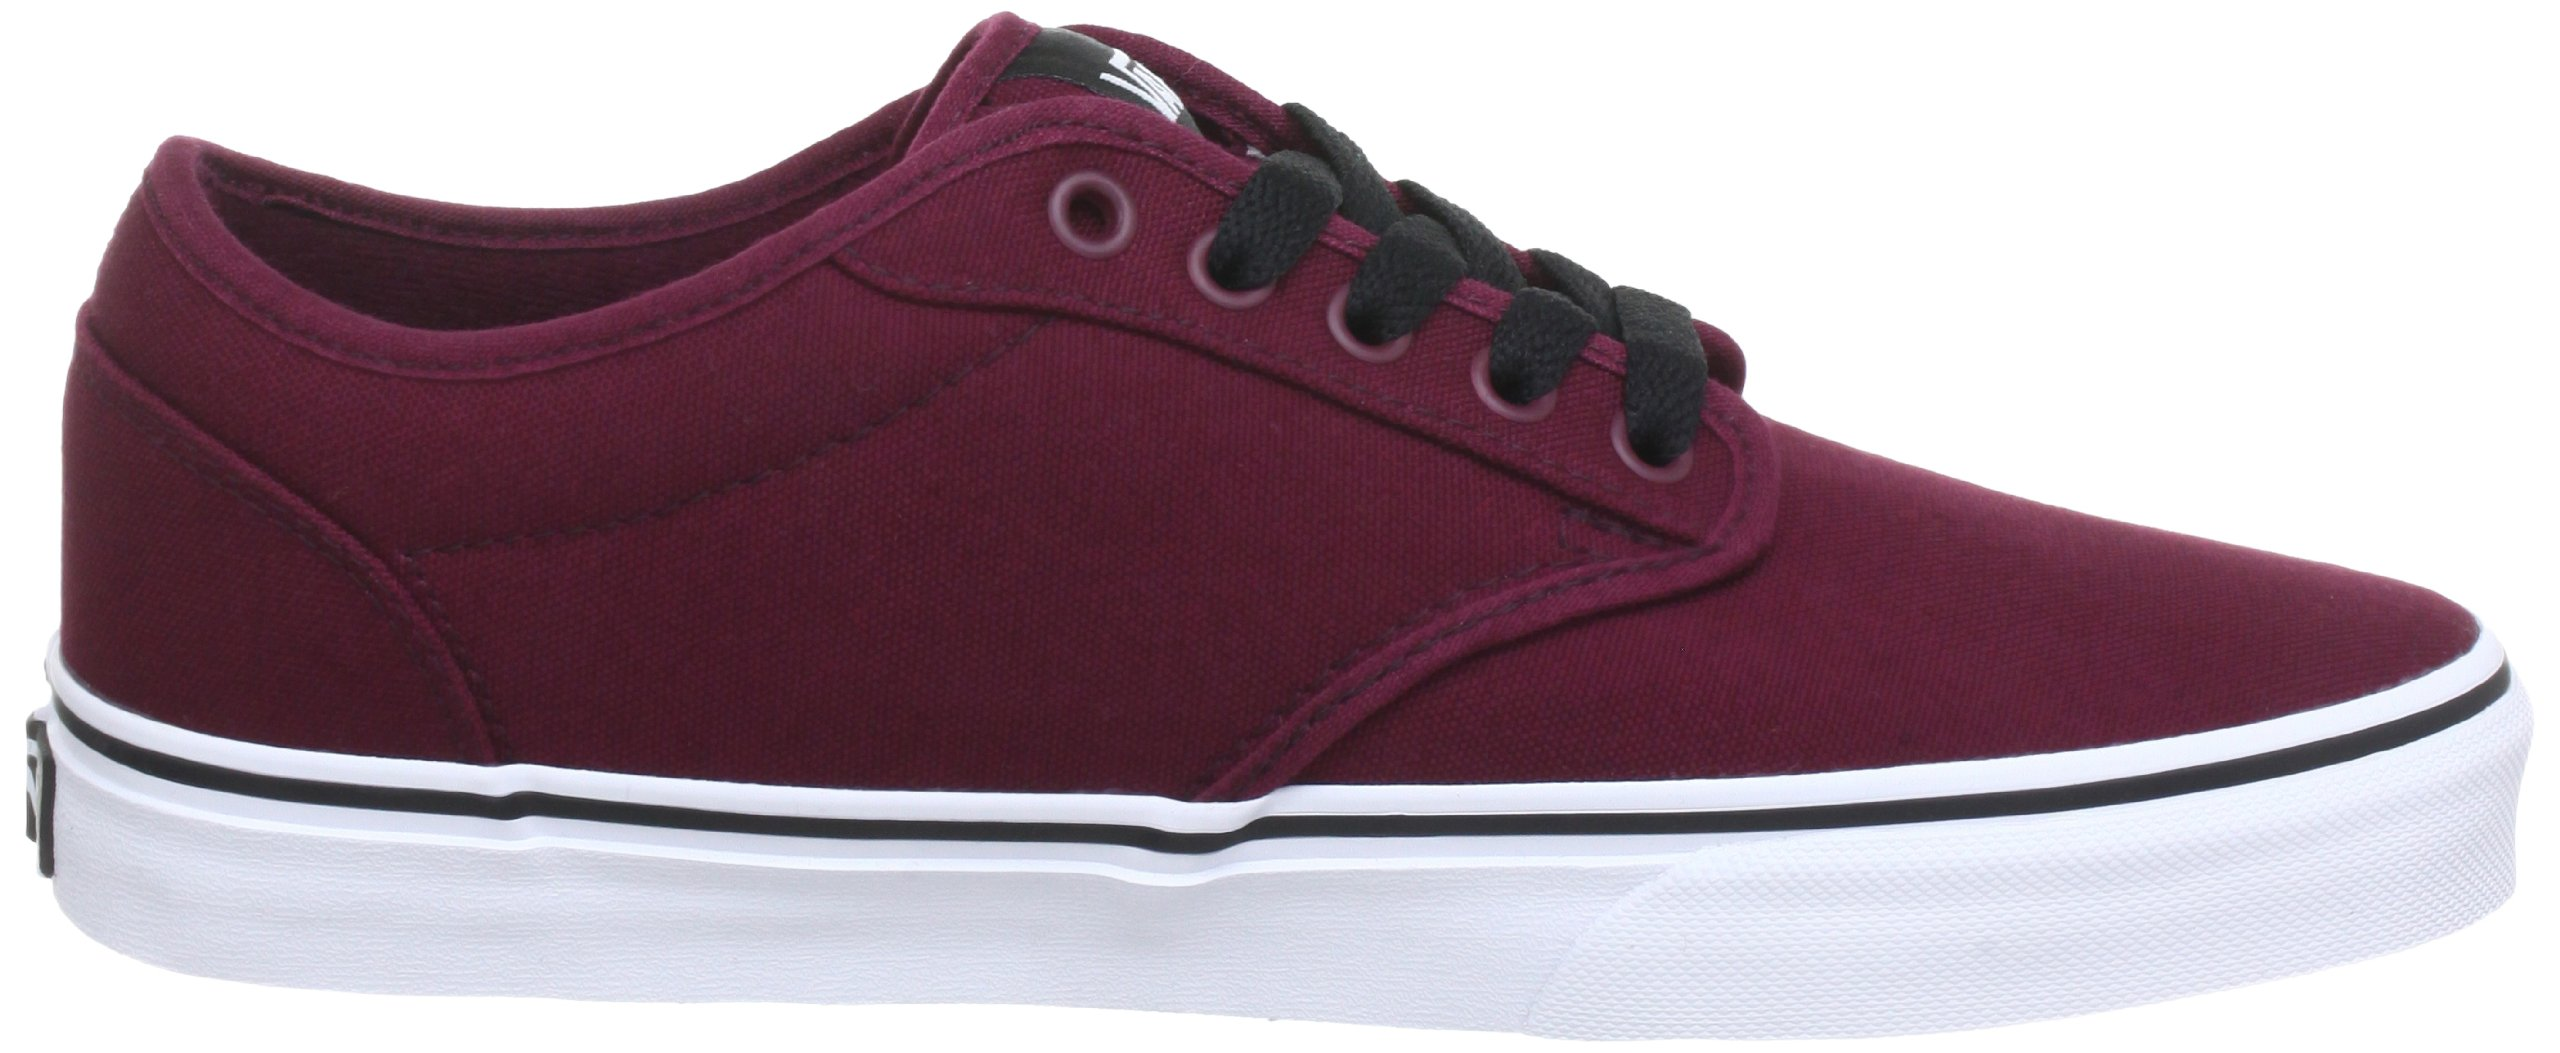 a2e44587c1d1a5 Vans Men Low-Top Sneakers